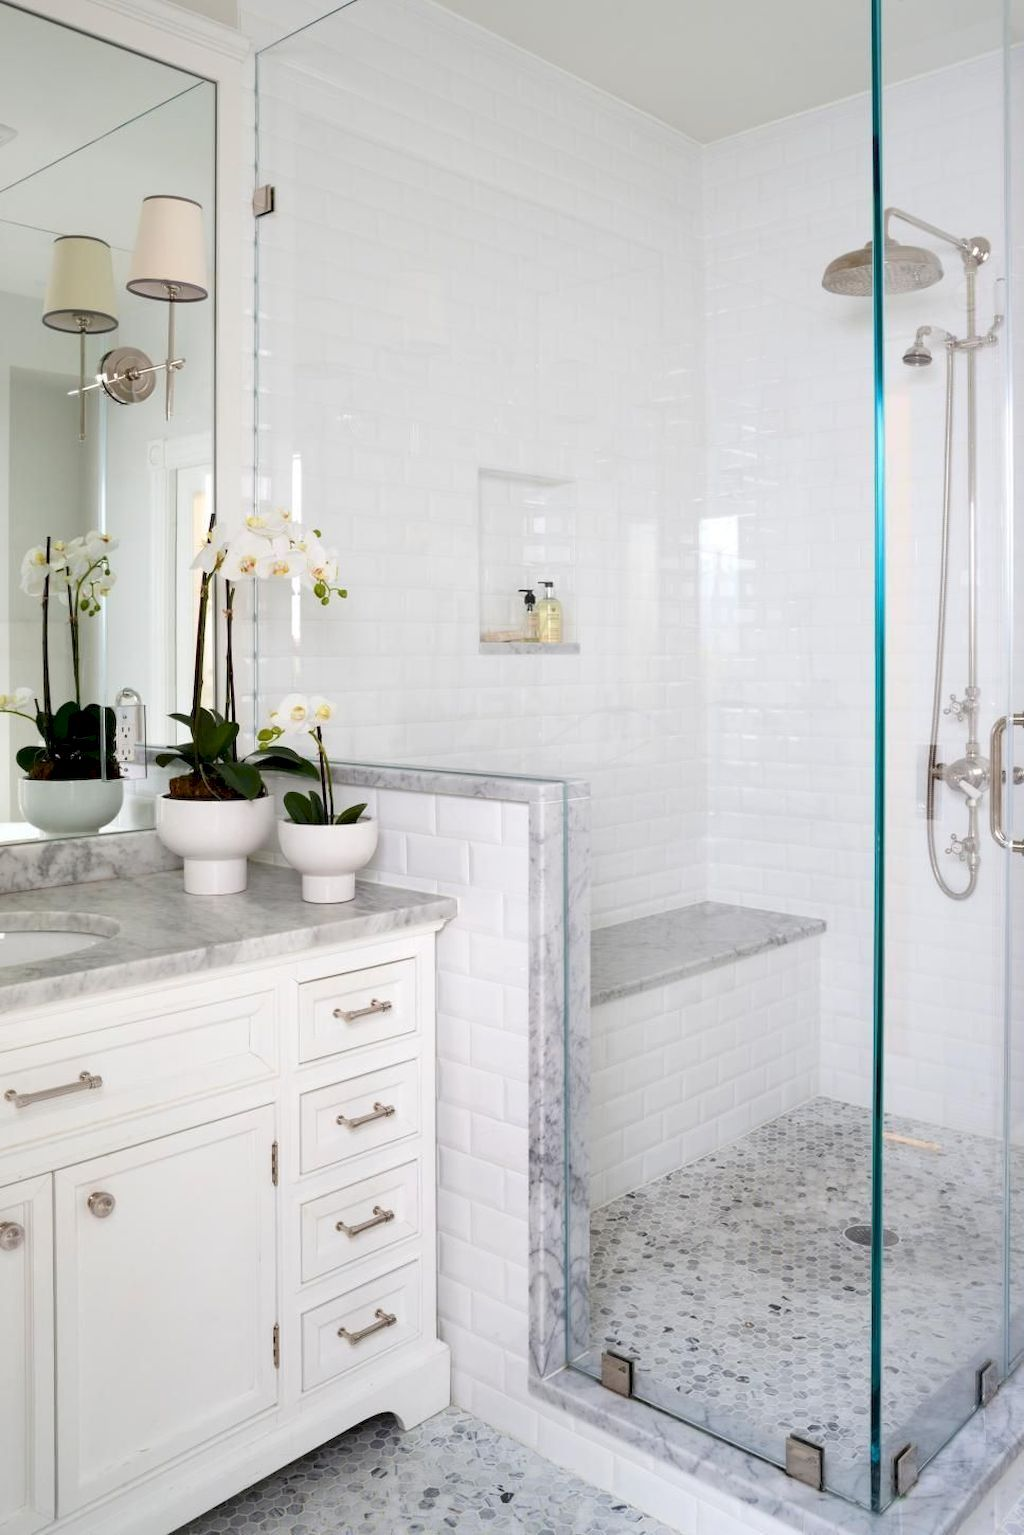 80 stunning tile shower designs ideas for bathroom remodel (7 | Tile ...